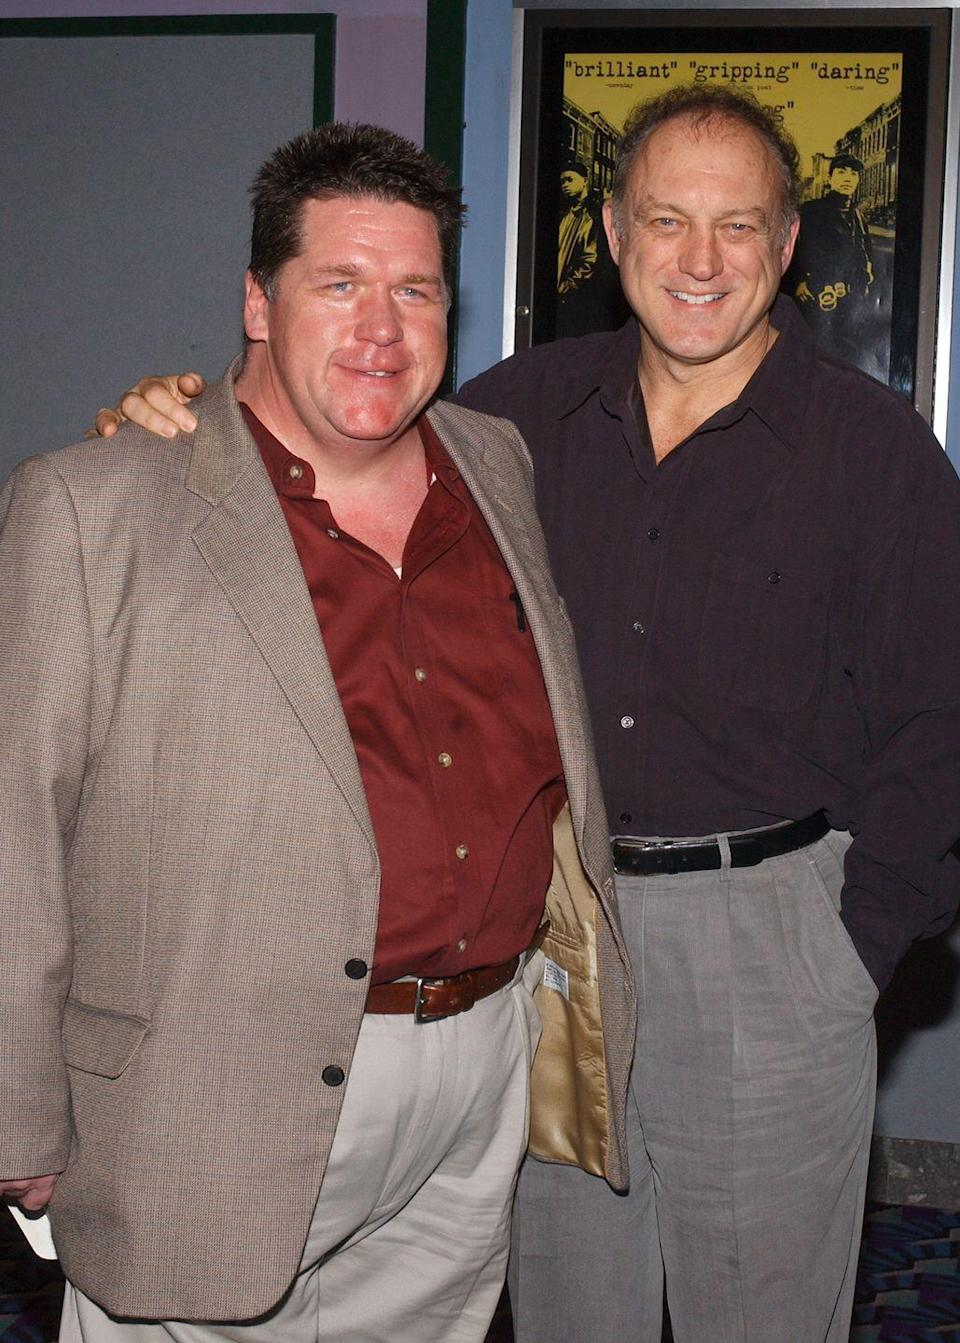 """<p>Williams was a recurring guest star on <em>The Wire</em> throughout all of five seasons. He played homicide Sergeant Jay Landsman, who he admitted he didn't know a lot about going into the role: """"I didn't even know there was a real Jay Landsman until the end of the first season. I wasn't told a lot. I'm something like 30 characters down the cast list,"""" he told <a href=""""https://www.maxim.com/entertainment/maxim-interrogates-makers-and-stars-wire"""" rel=""""nofollow noopener"""" target=""""_blank"""" data-ylk=""""slk:Maxim"""" class=""""link rapid-noclick-resp""""><em>Maxim</em></a>.</p>"""